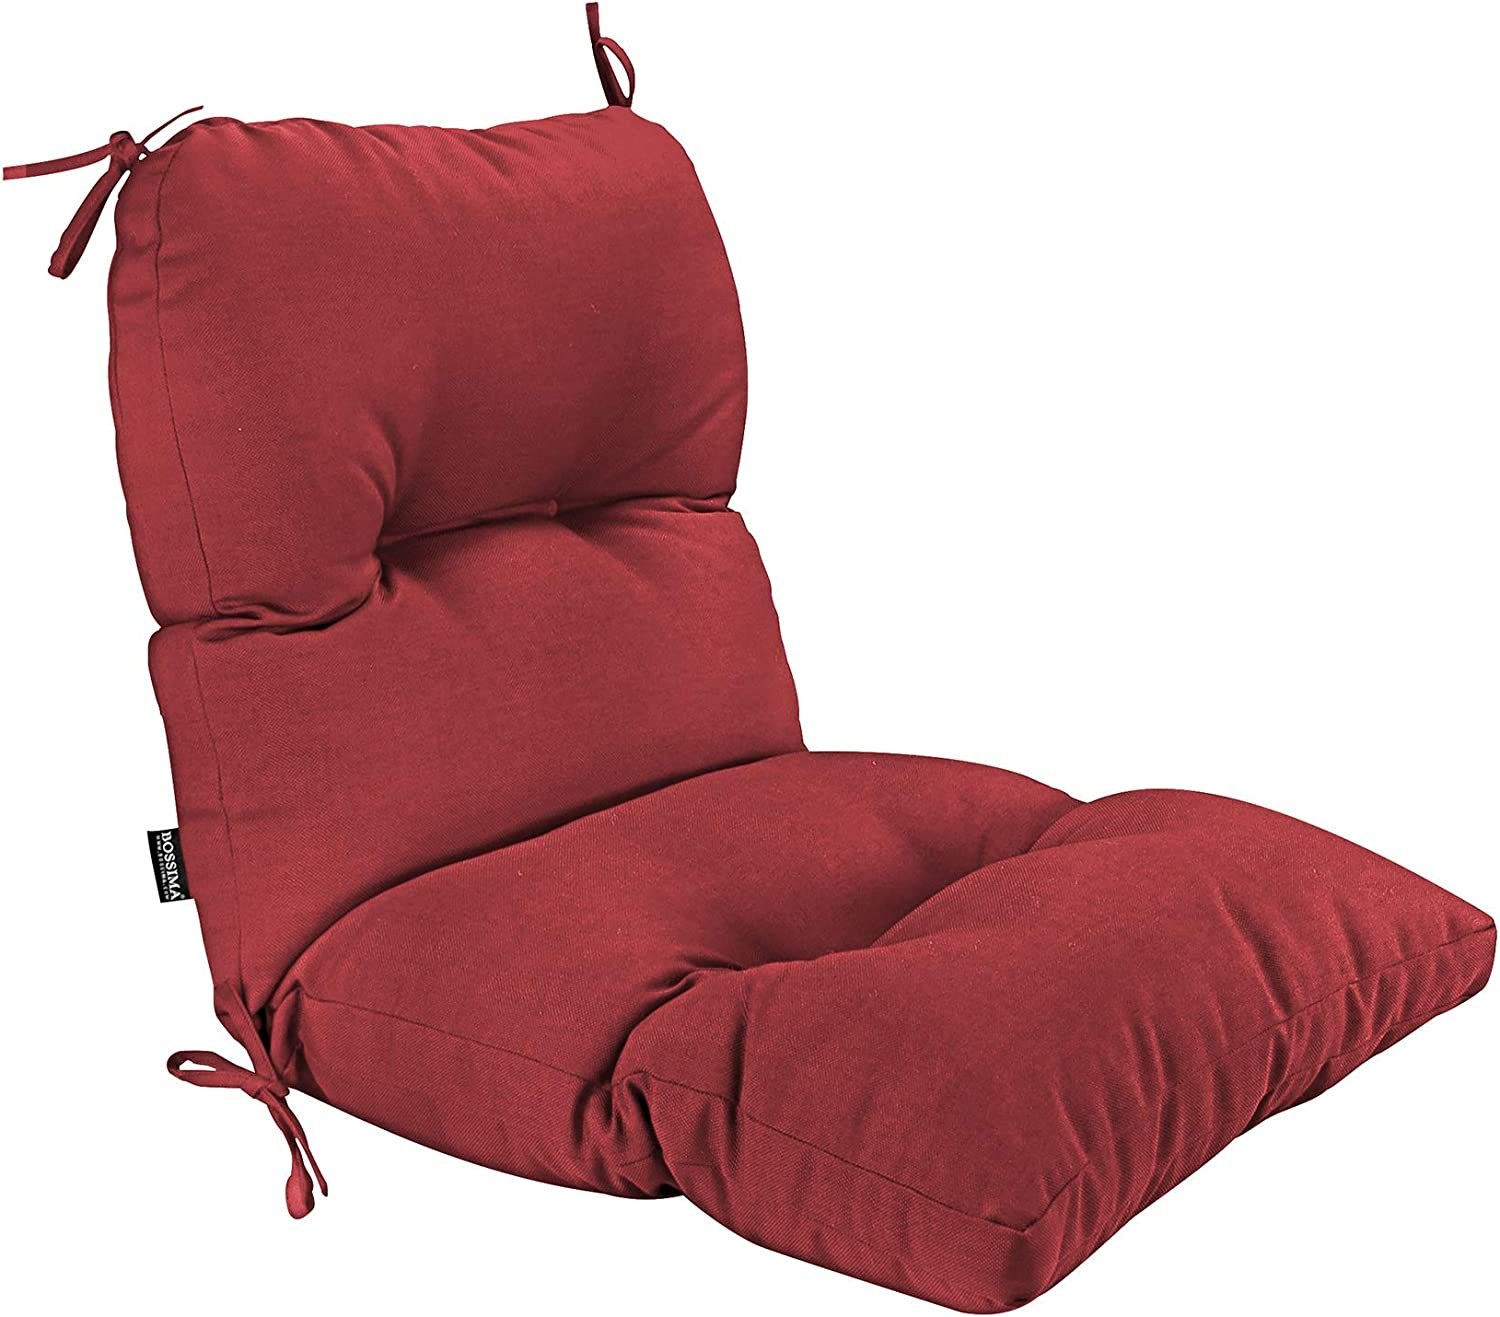 BOSSIMA Outdoor Indoor High Back Chair Tufted Cushions Comfort Replacement Patio Seating Cushions Red